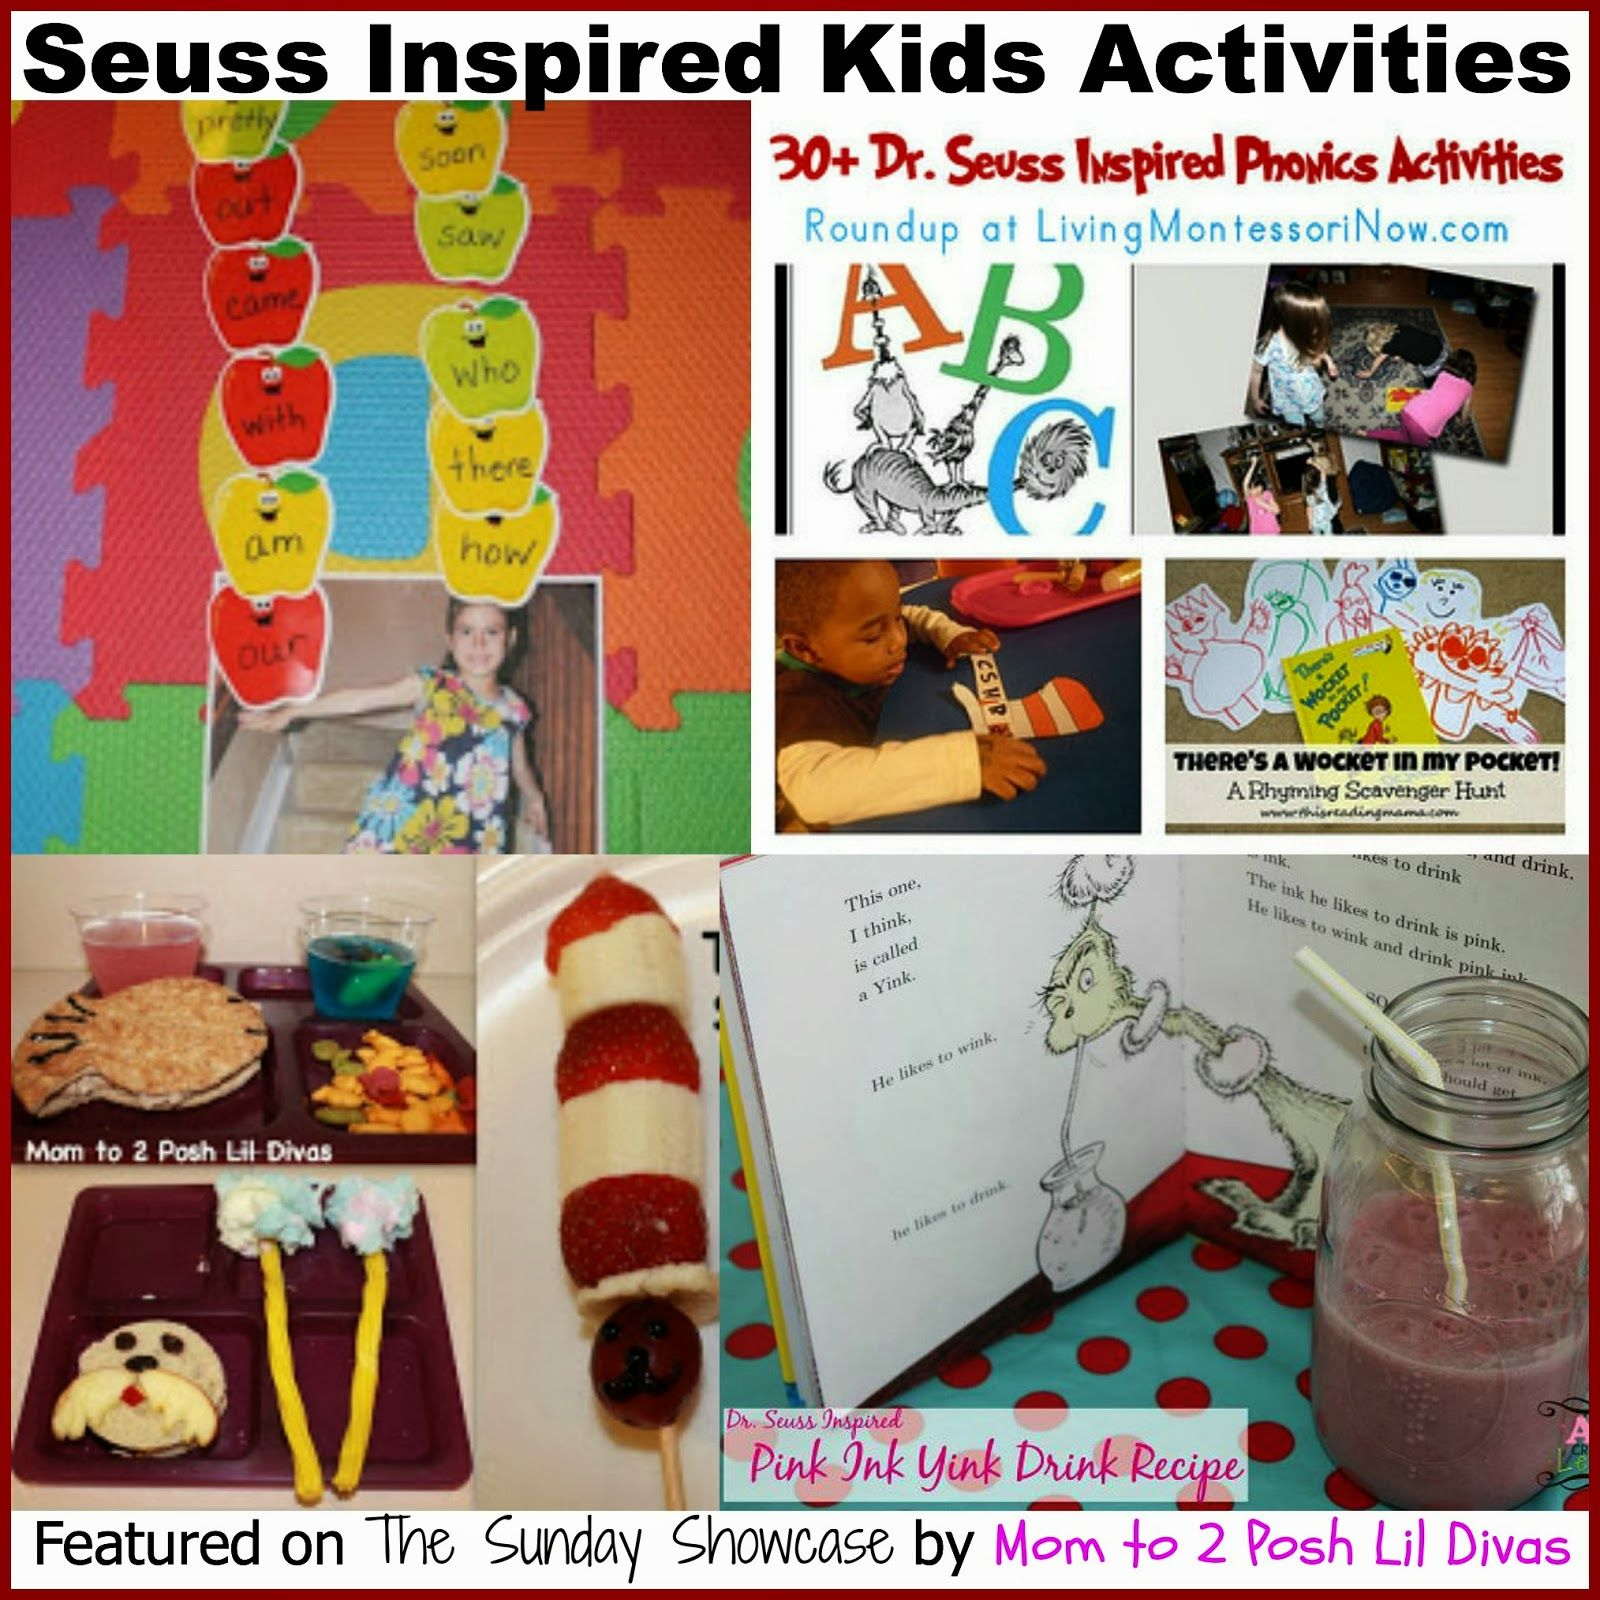 Seuss Inspired Activities For Kids From Mom To 2 Posh Lil Divas